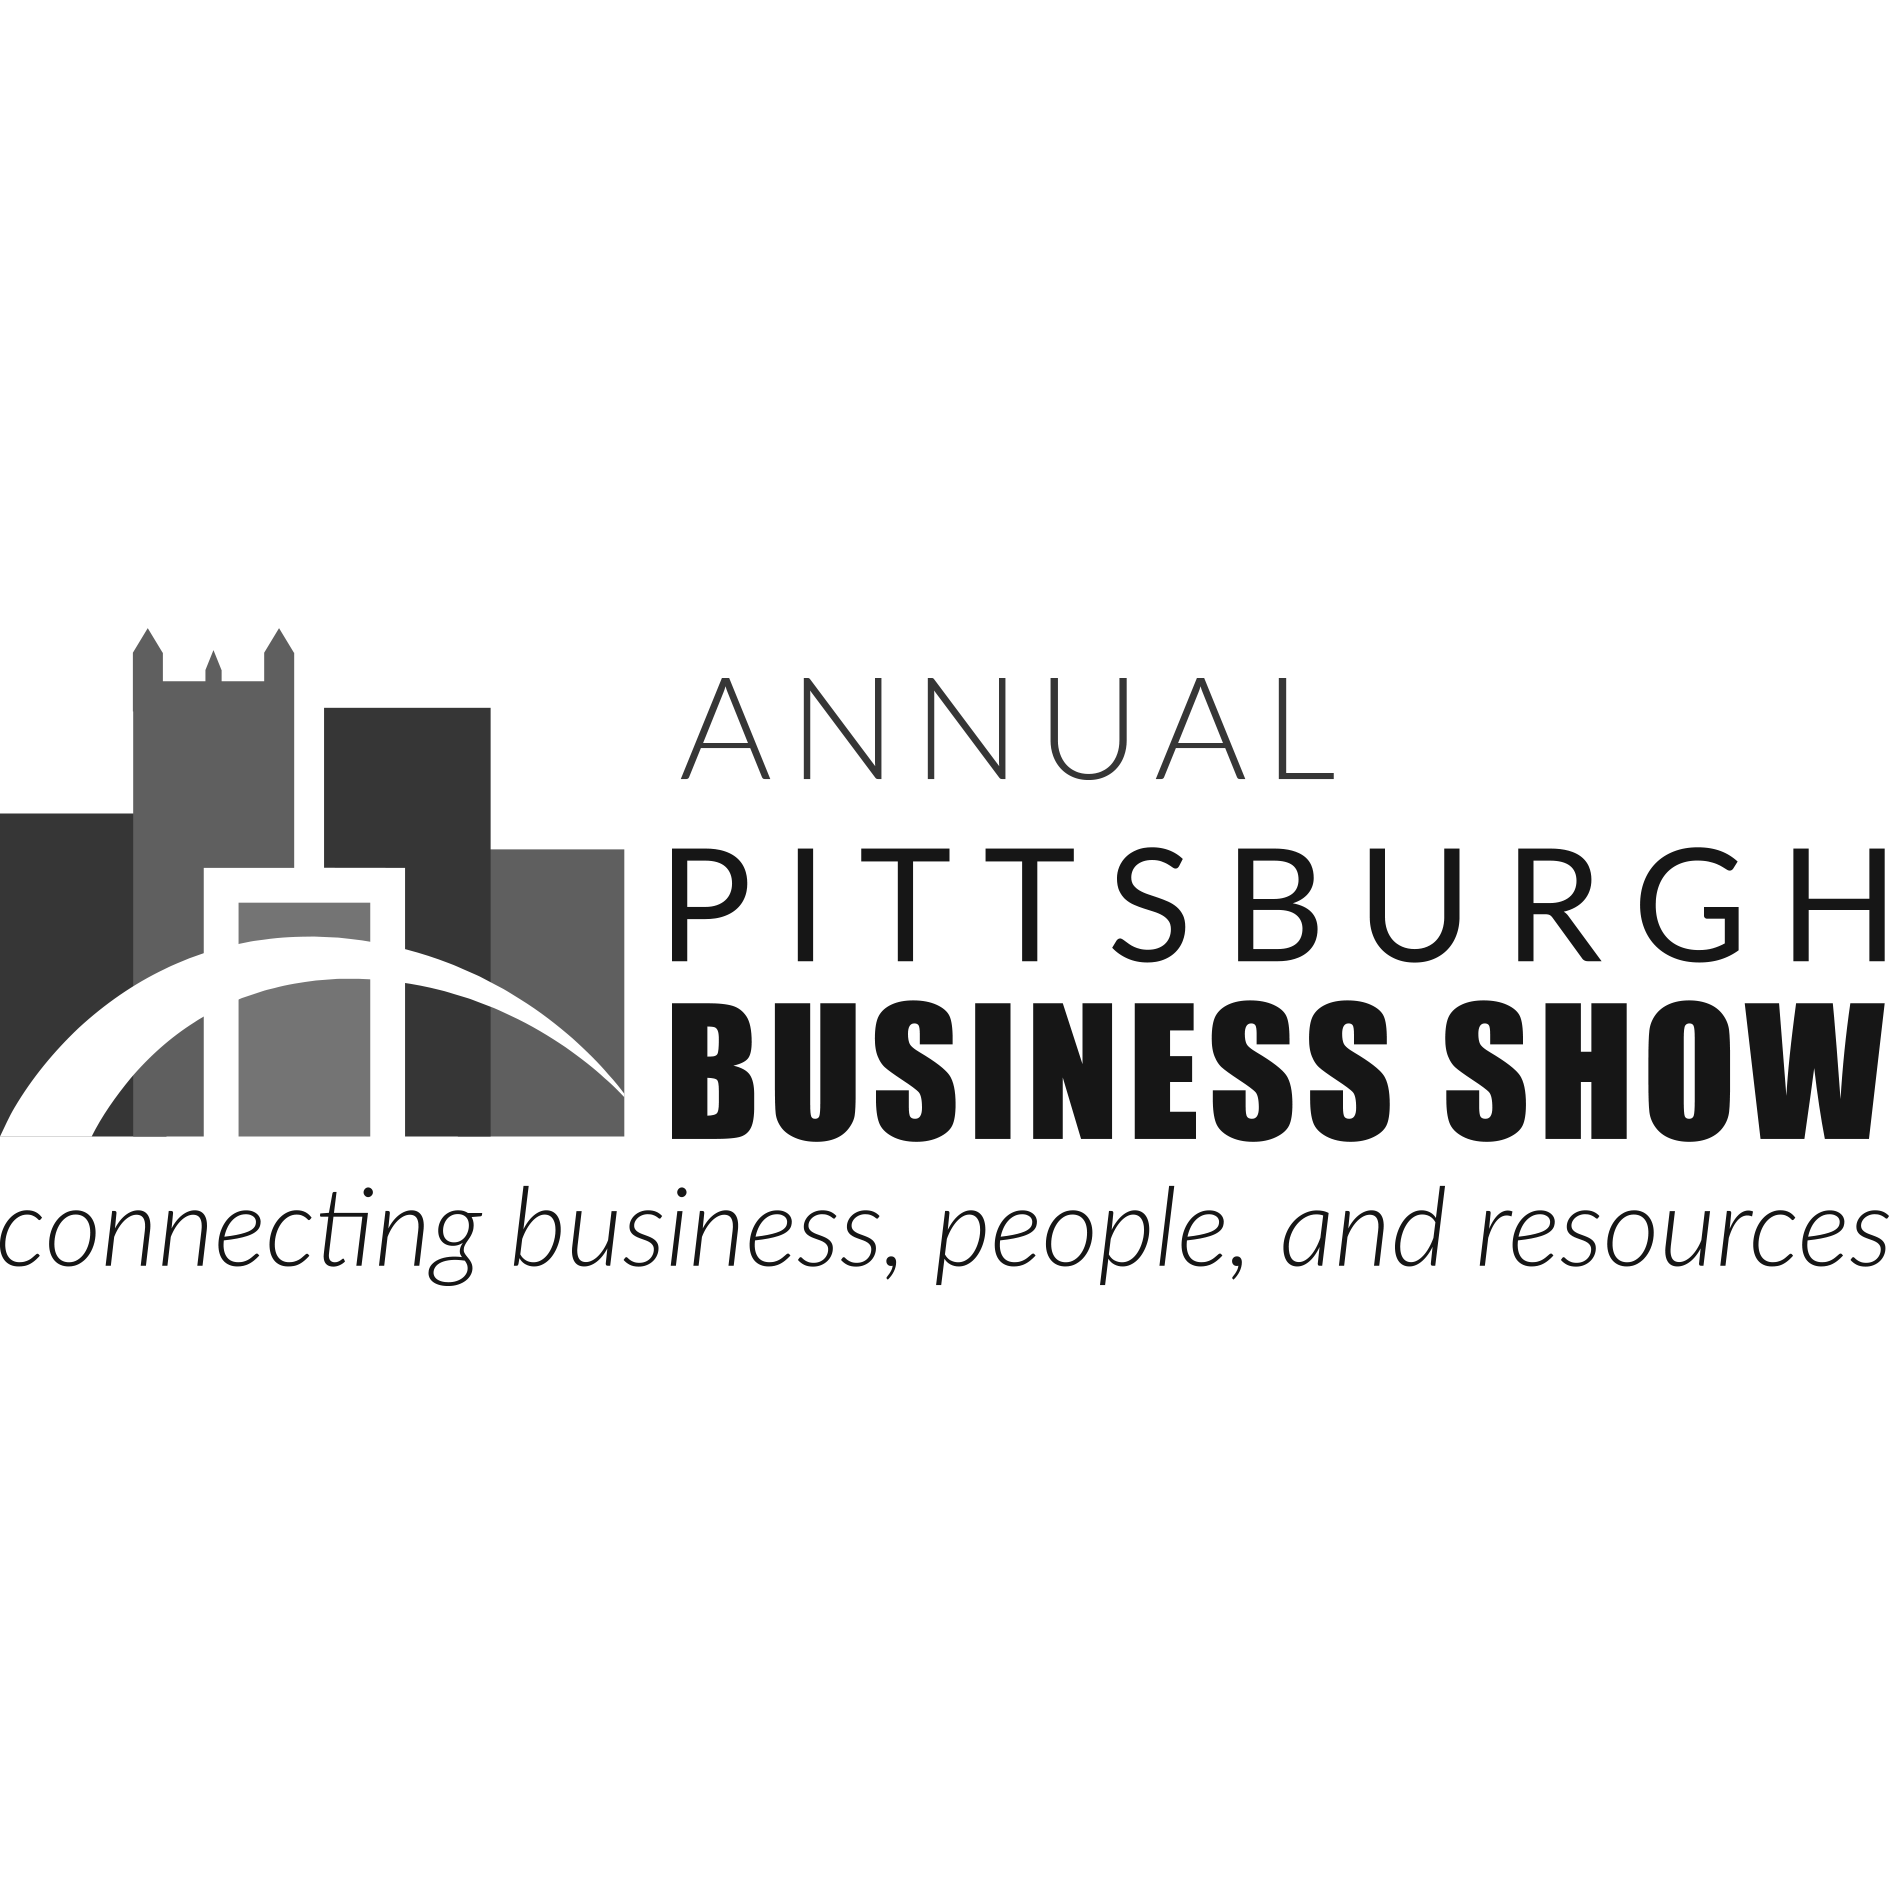 Pittsburgh Business Show, LLC.